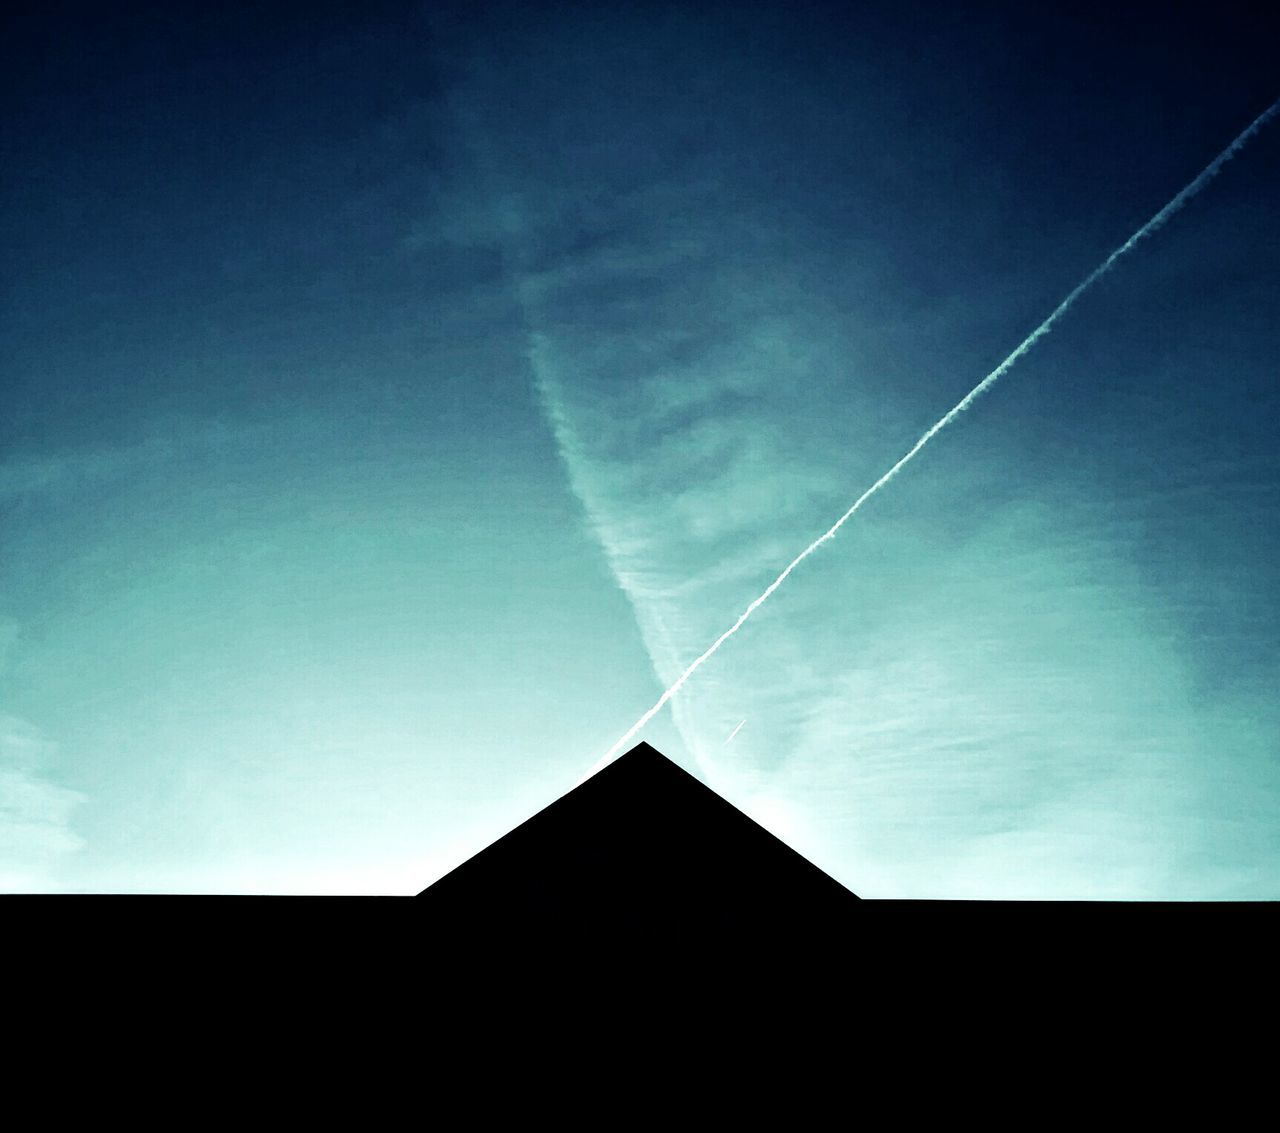 vapor trail, contrail, white, nature, low angle view, no people, sky, beauty in nature, day, outdoors, blue